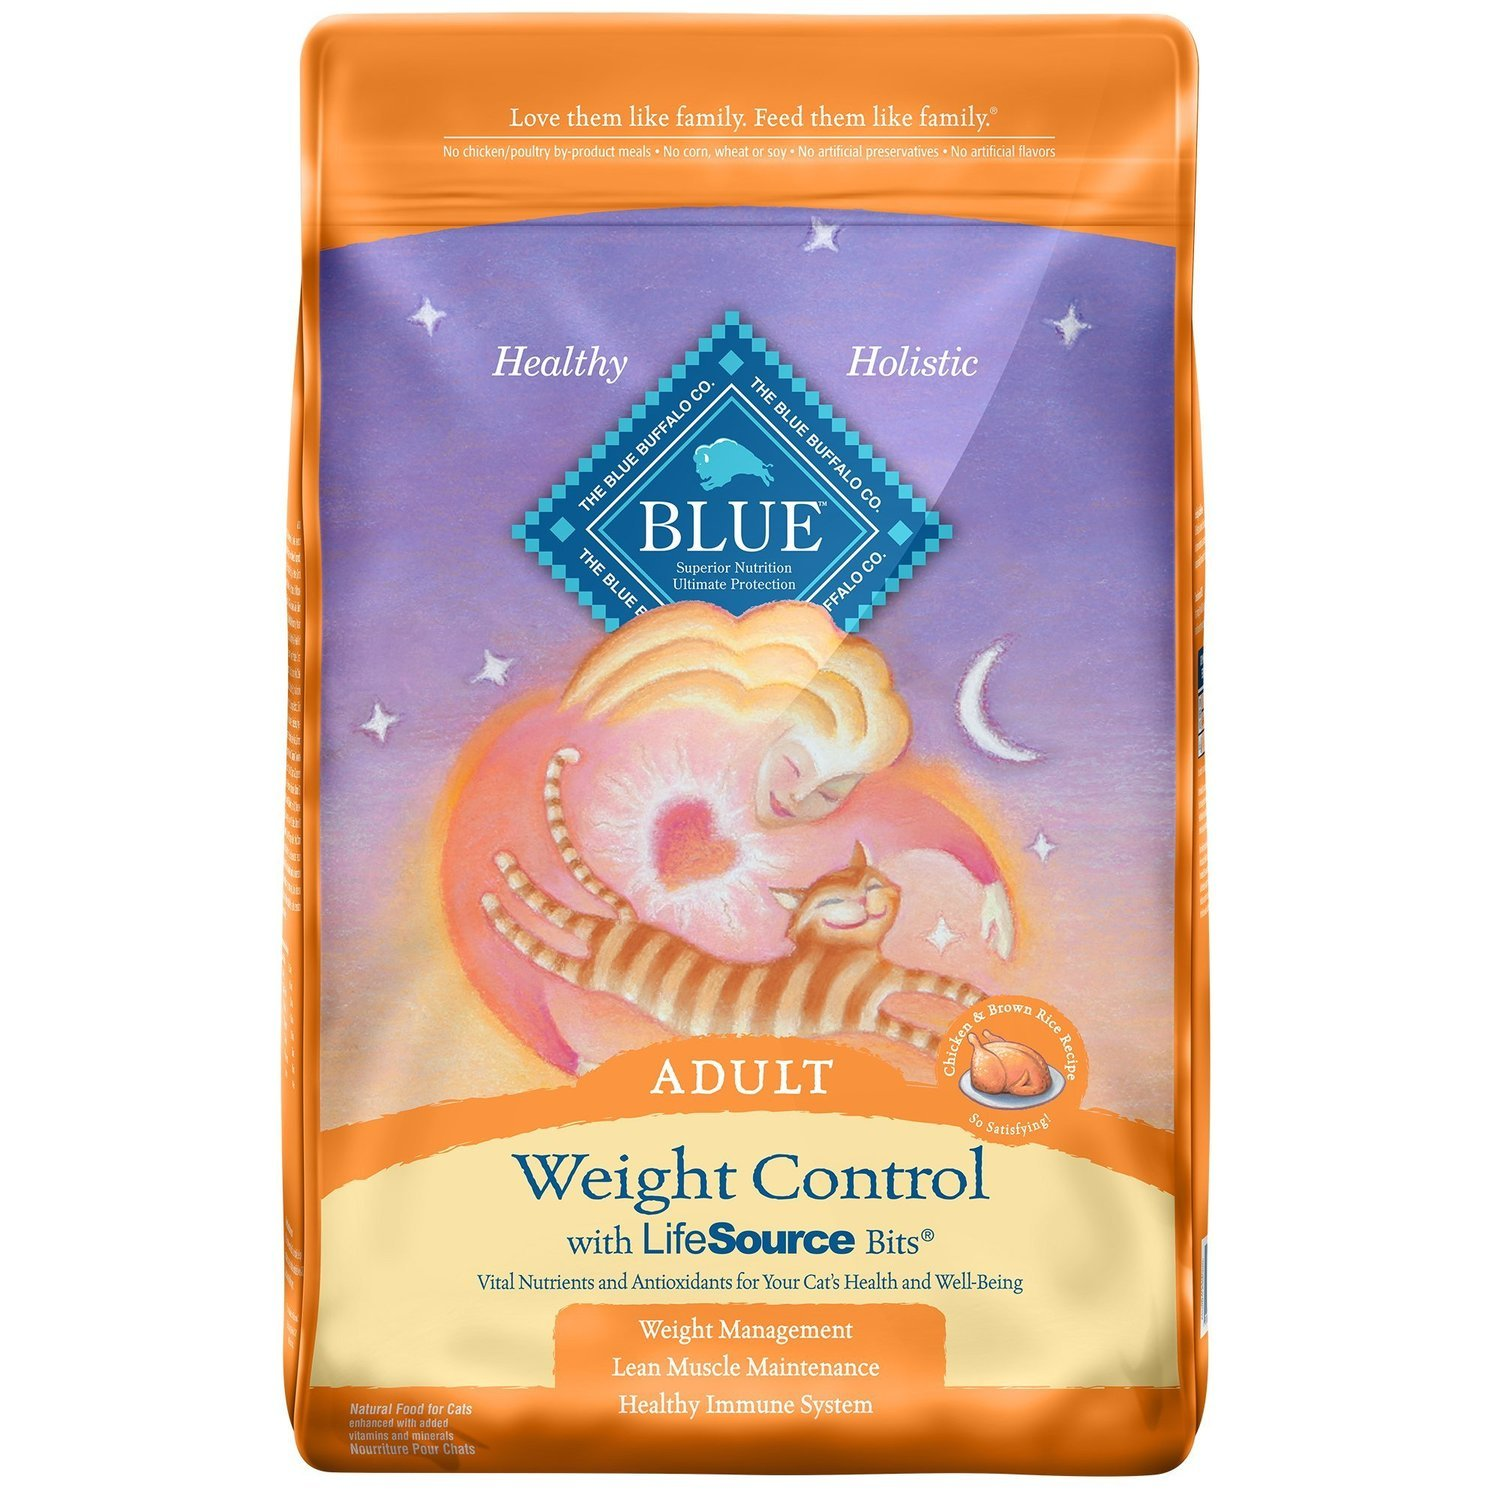 Blue Buffalo Weight Control Chicken & Brown Rice Adult Cat Food, 15 lbs.